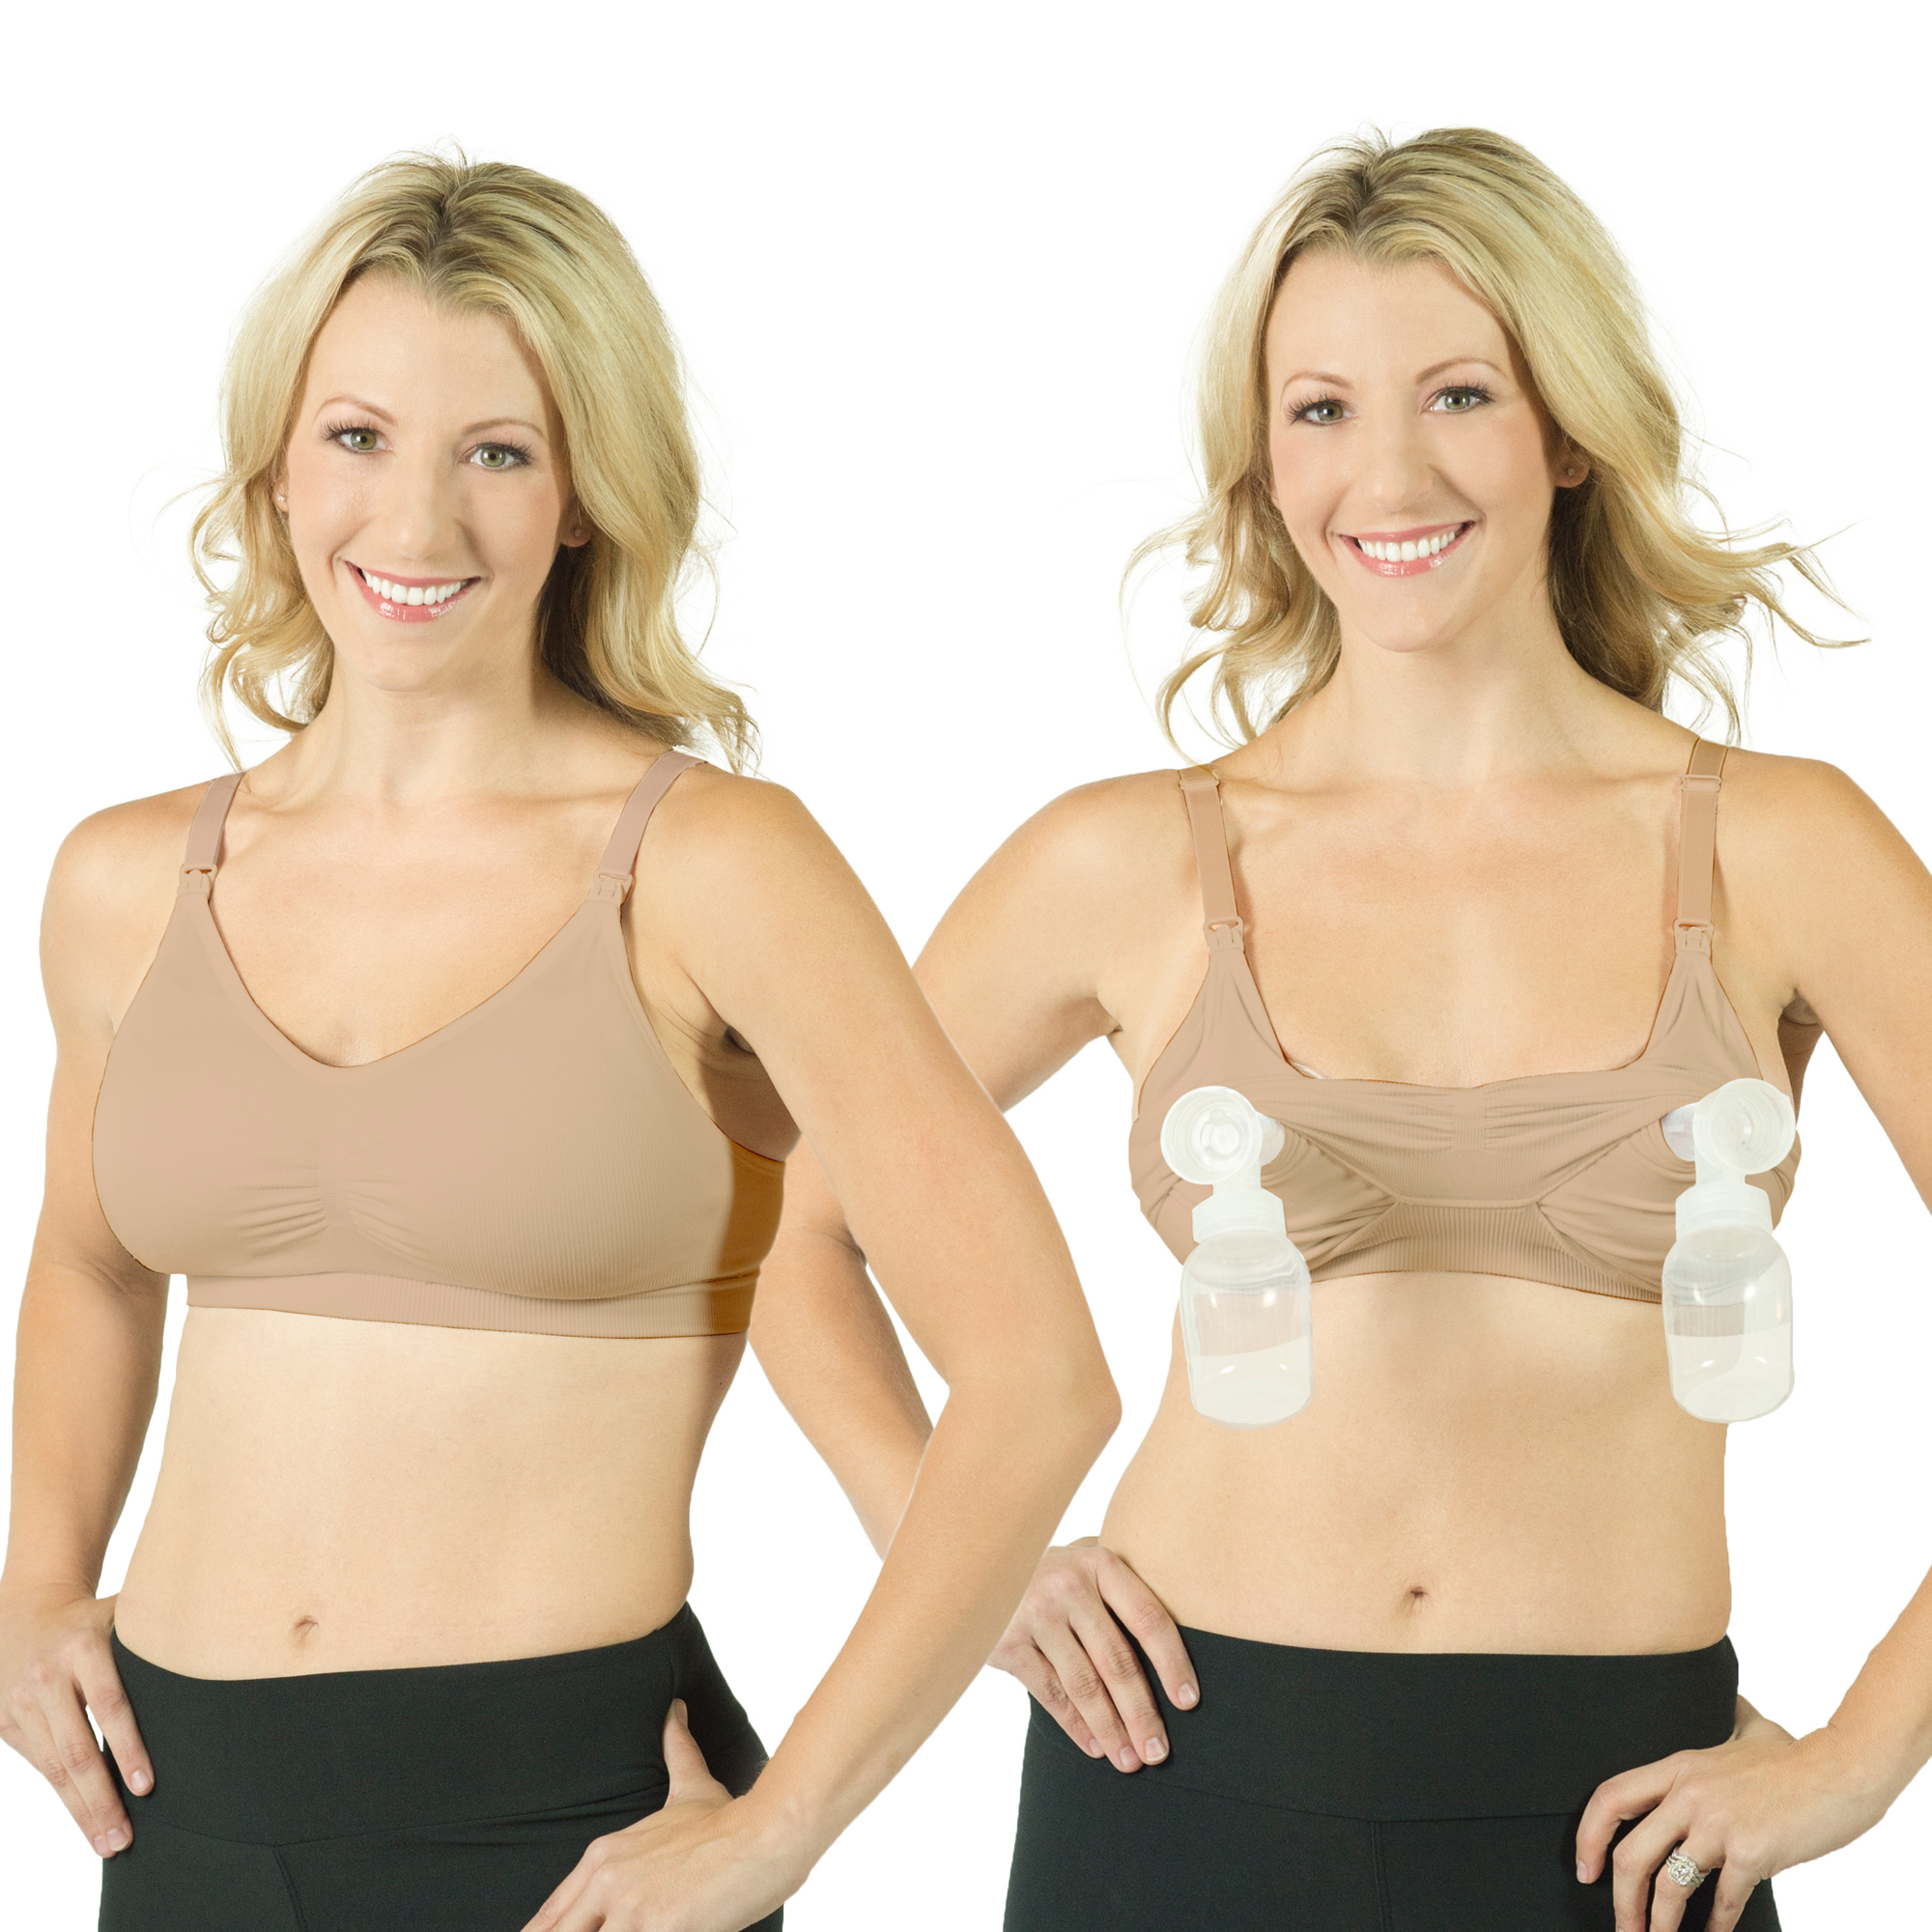 Rumina Pump&Nurse Seamless all-in-one Nursing Bra for maternity, nursing with built in hands-free pumping bra